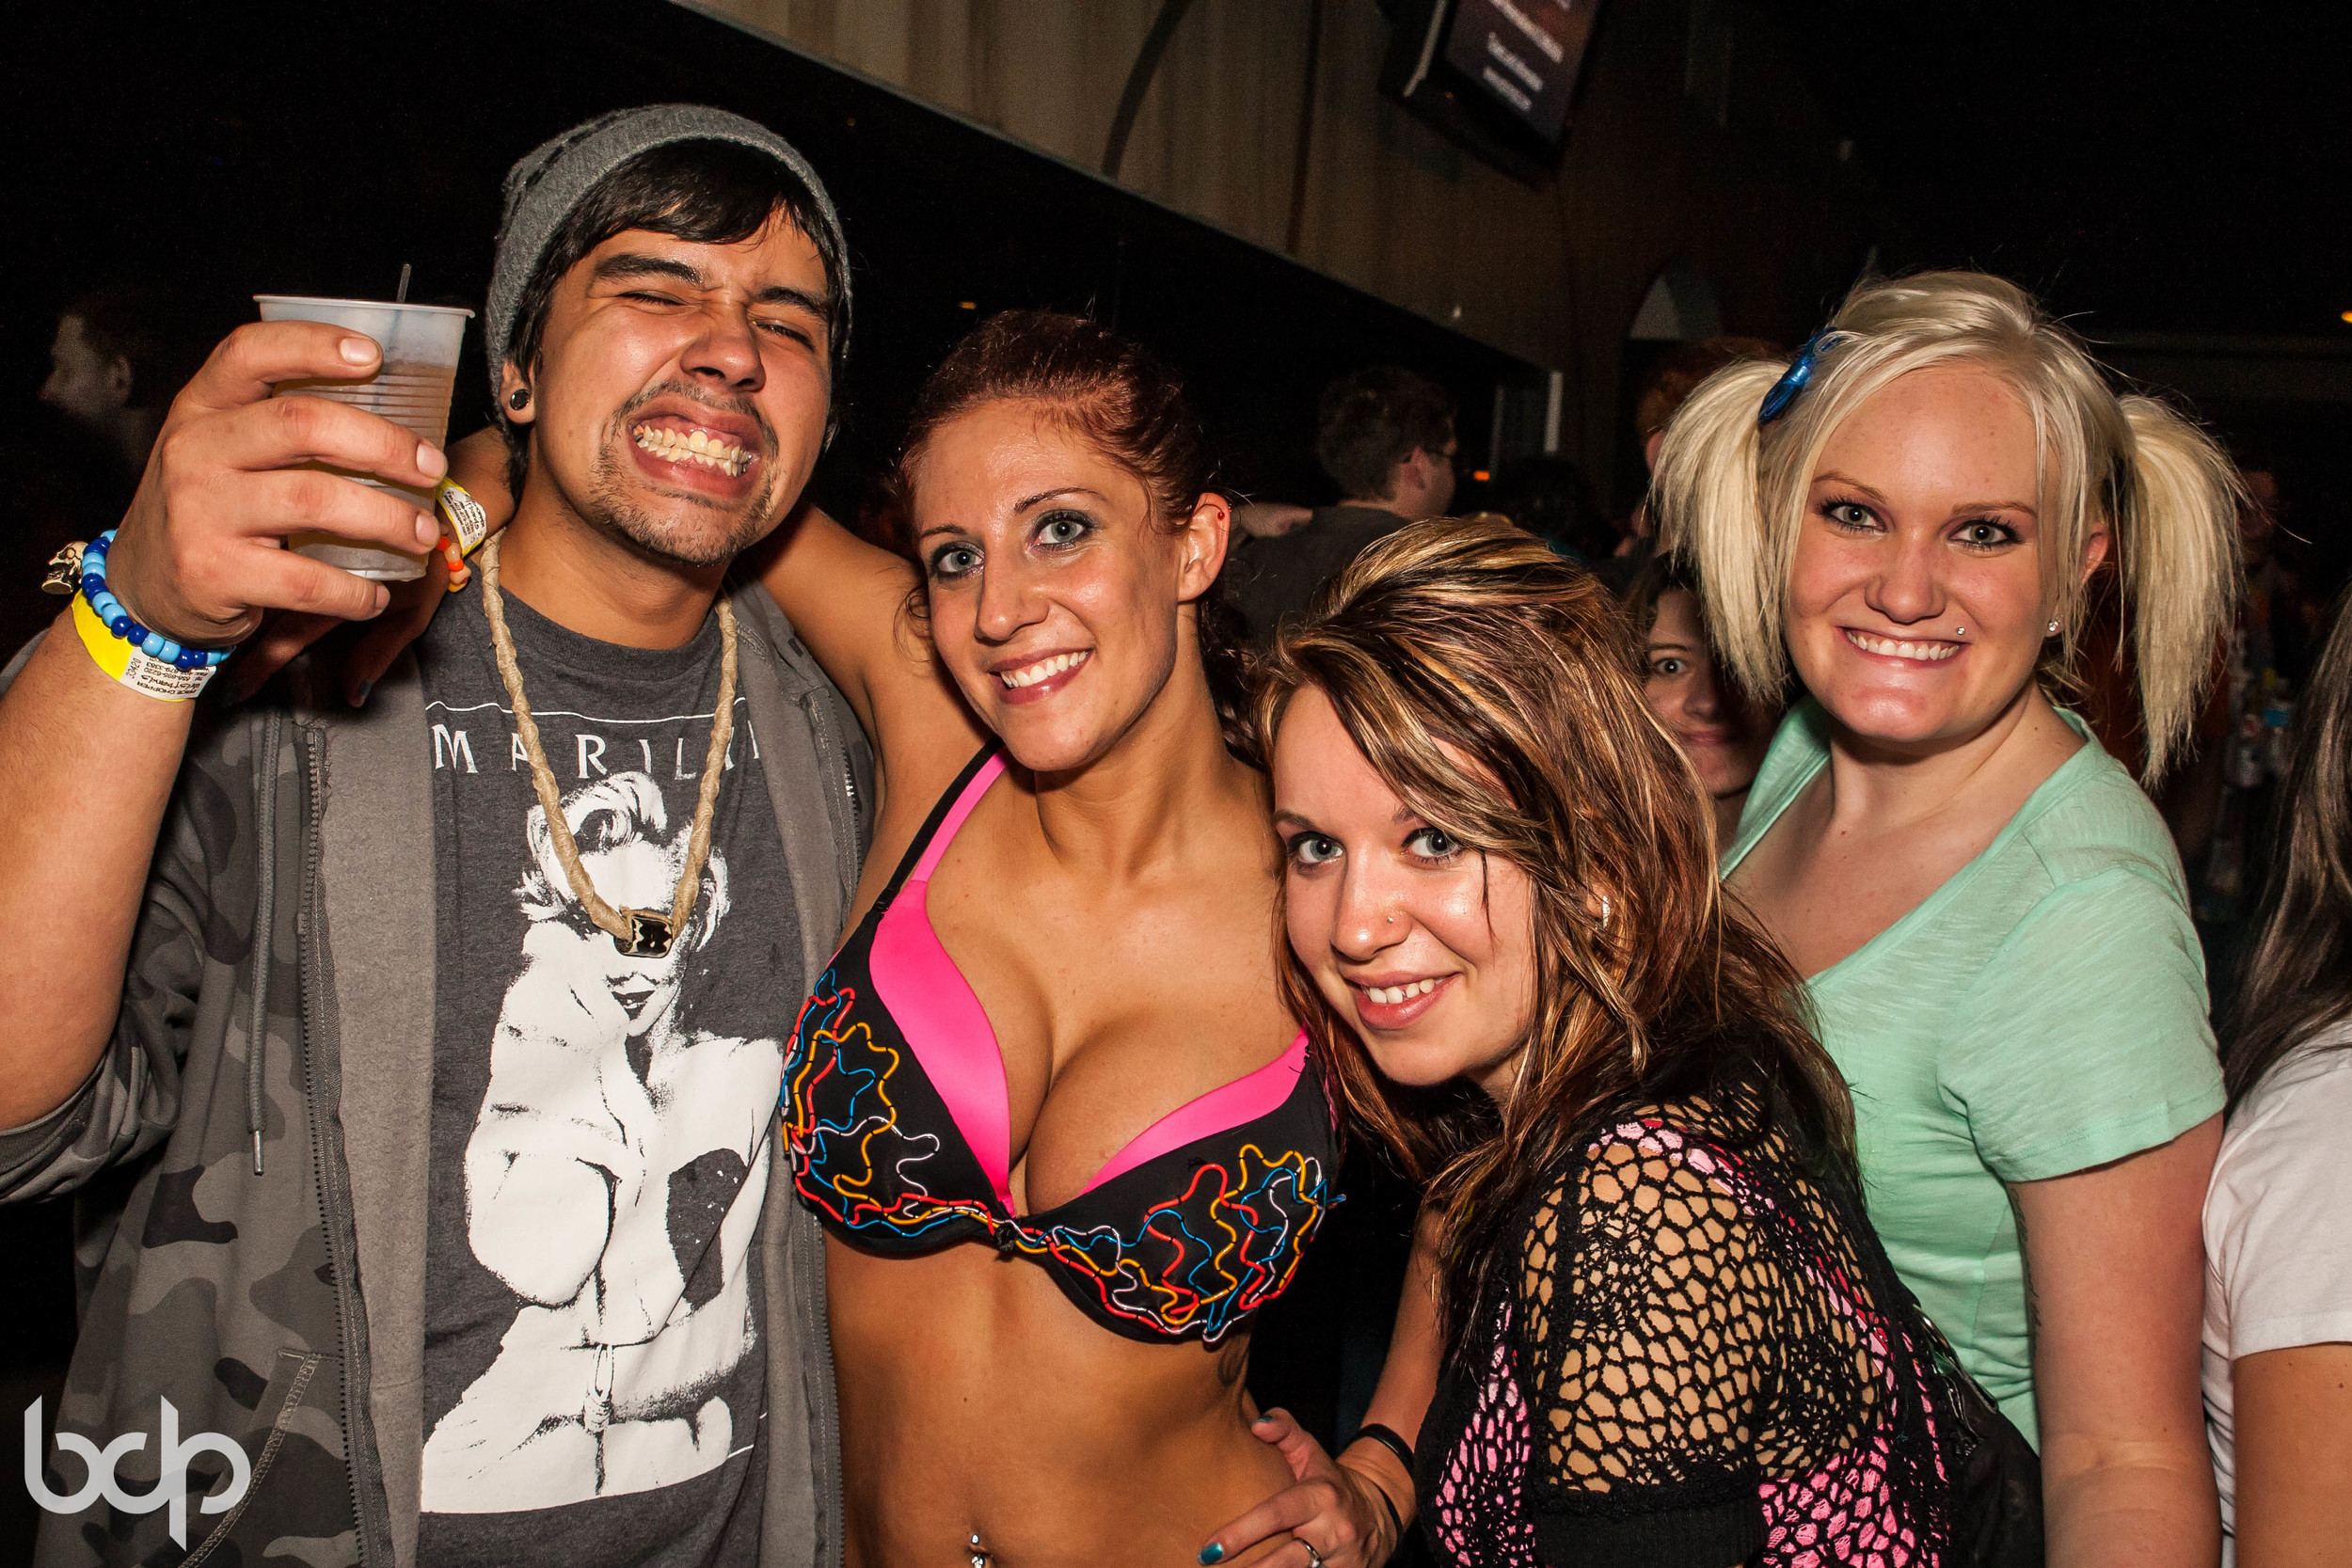 Aokify America Tour at Epic at Epic 110913 BDP-107.jpg